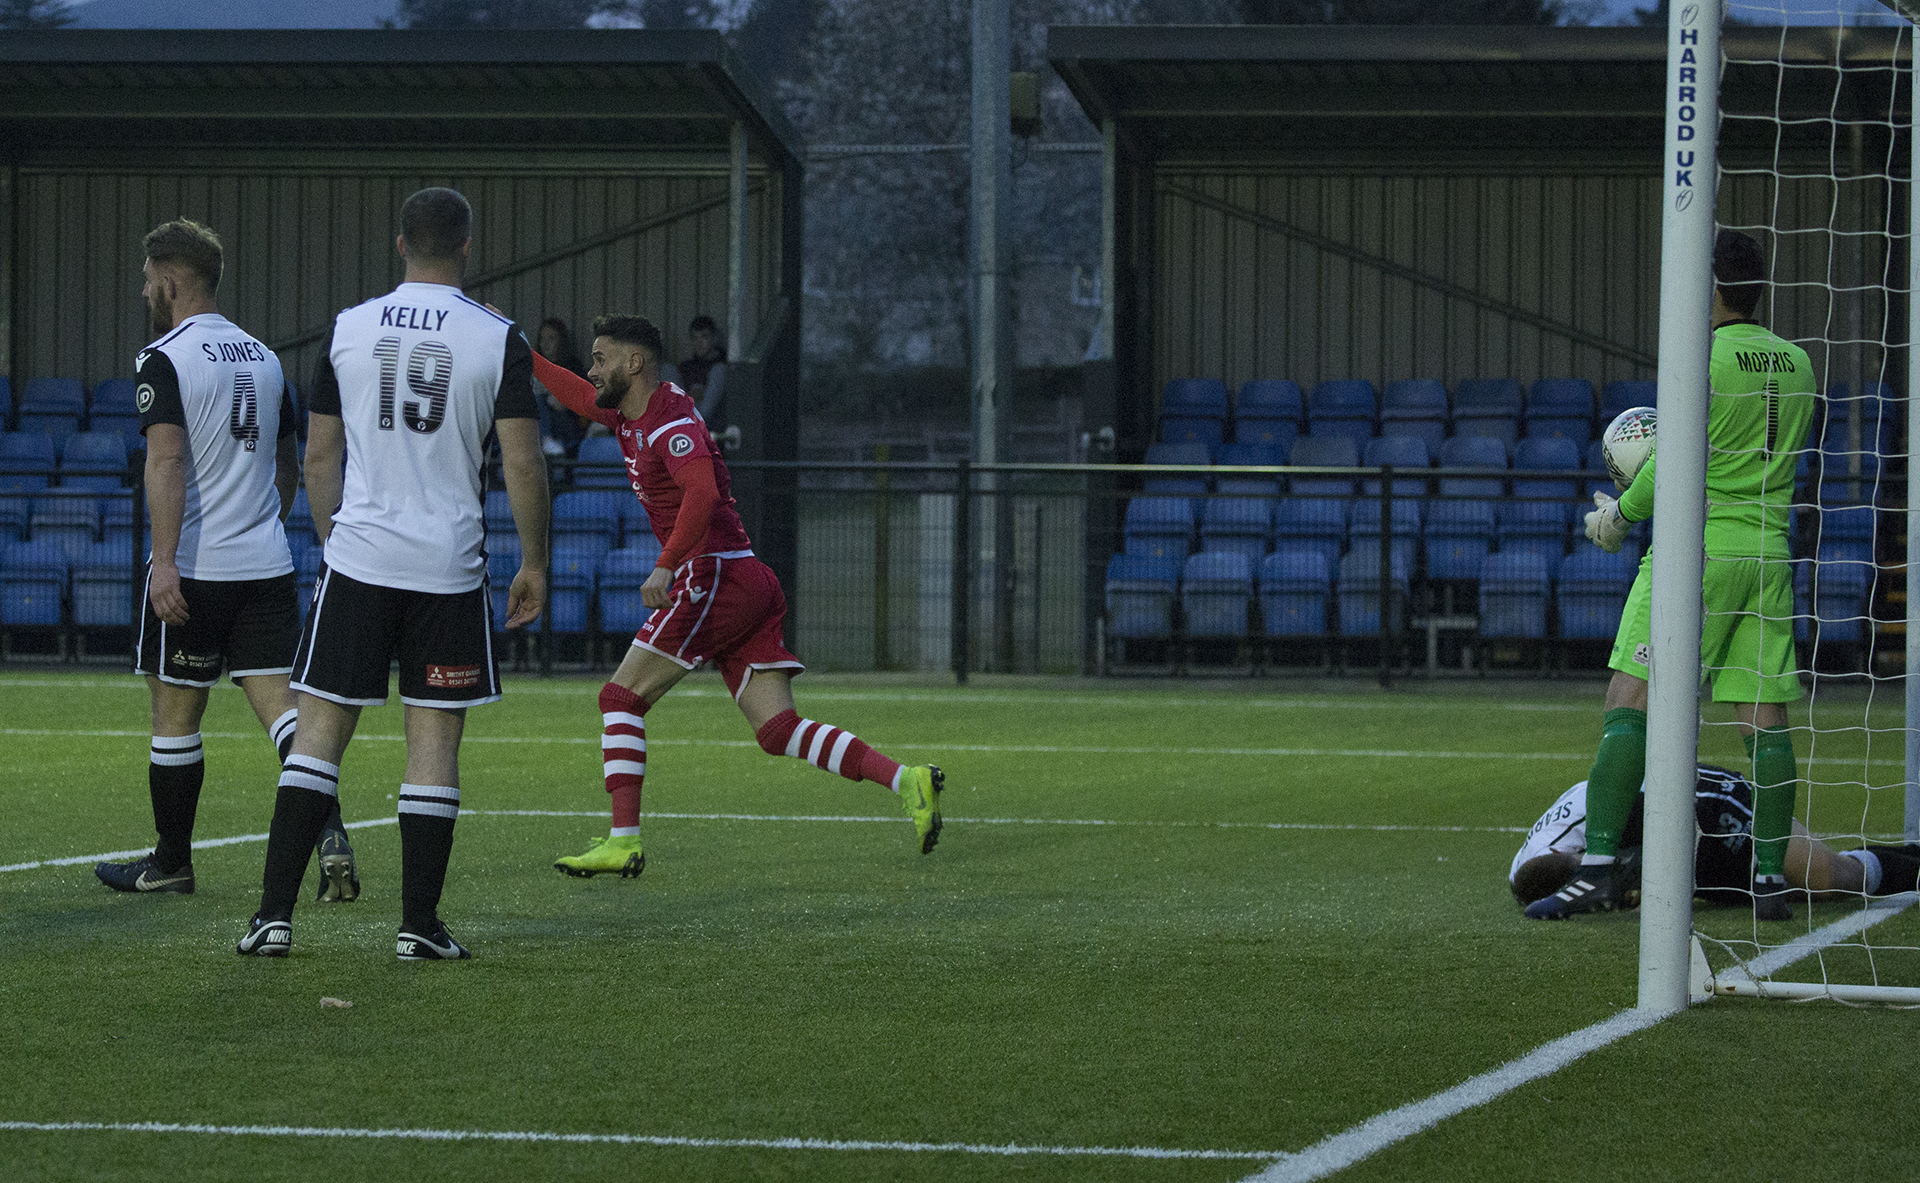 Nathan Woolfe wheels away celebrating his first goal | © NCM Media